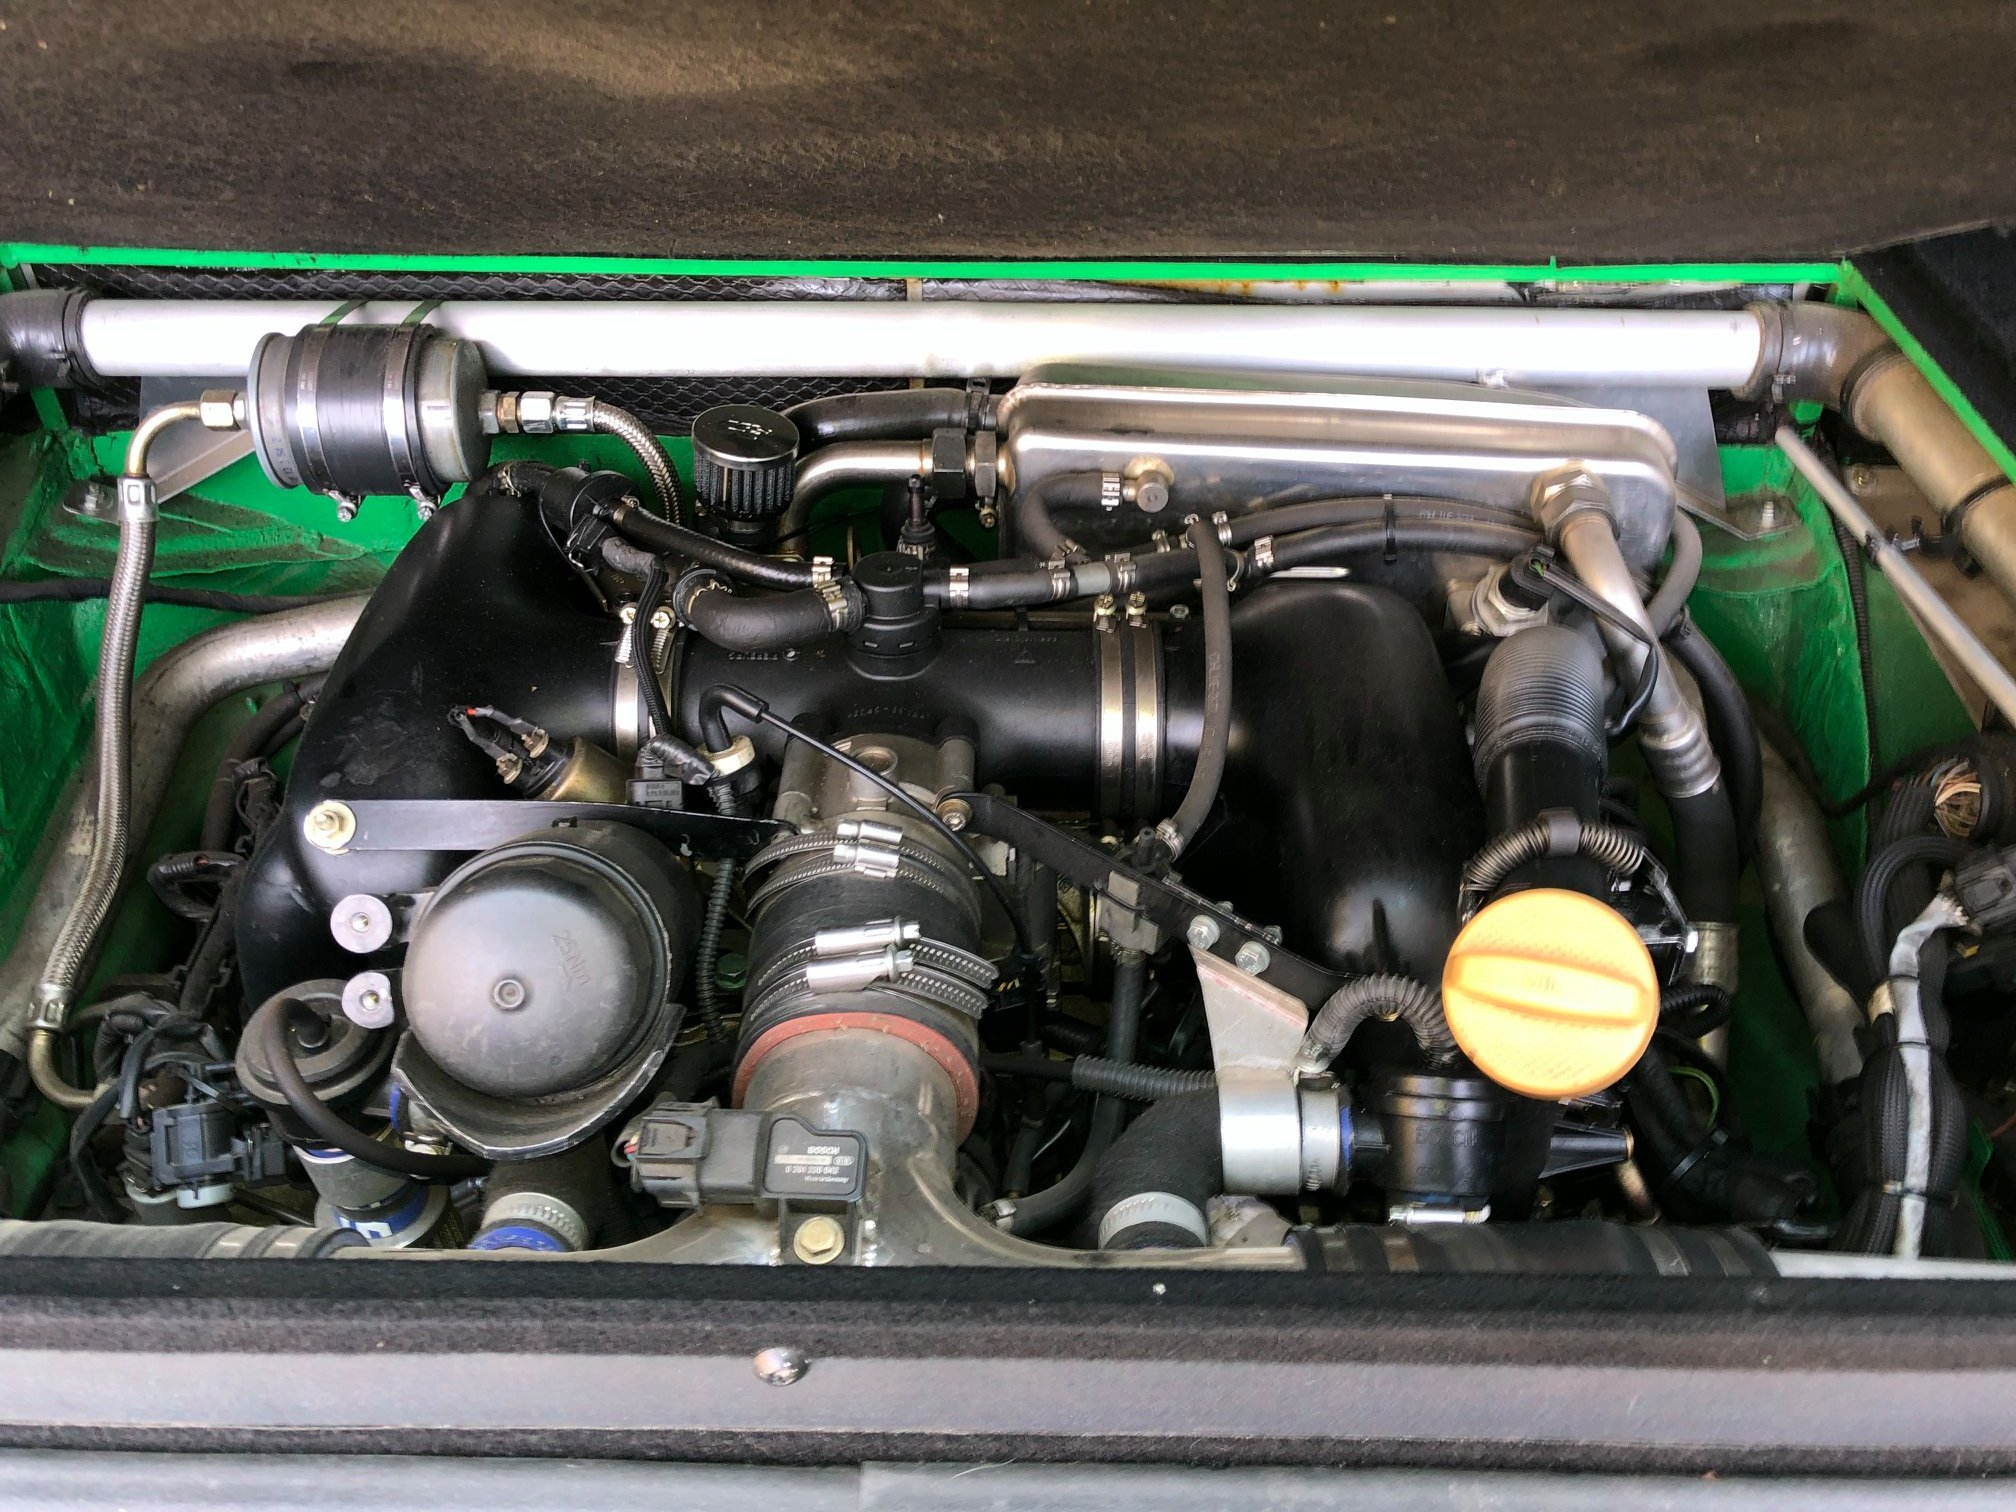 VW_T5_Porsche_engine_0017